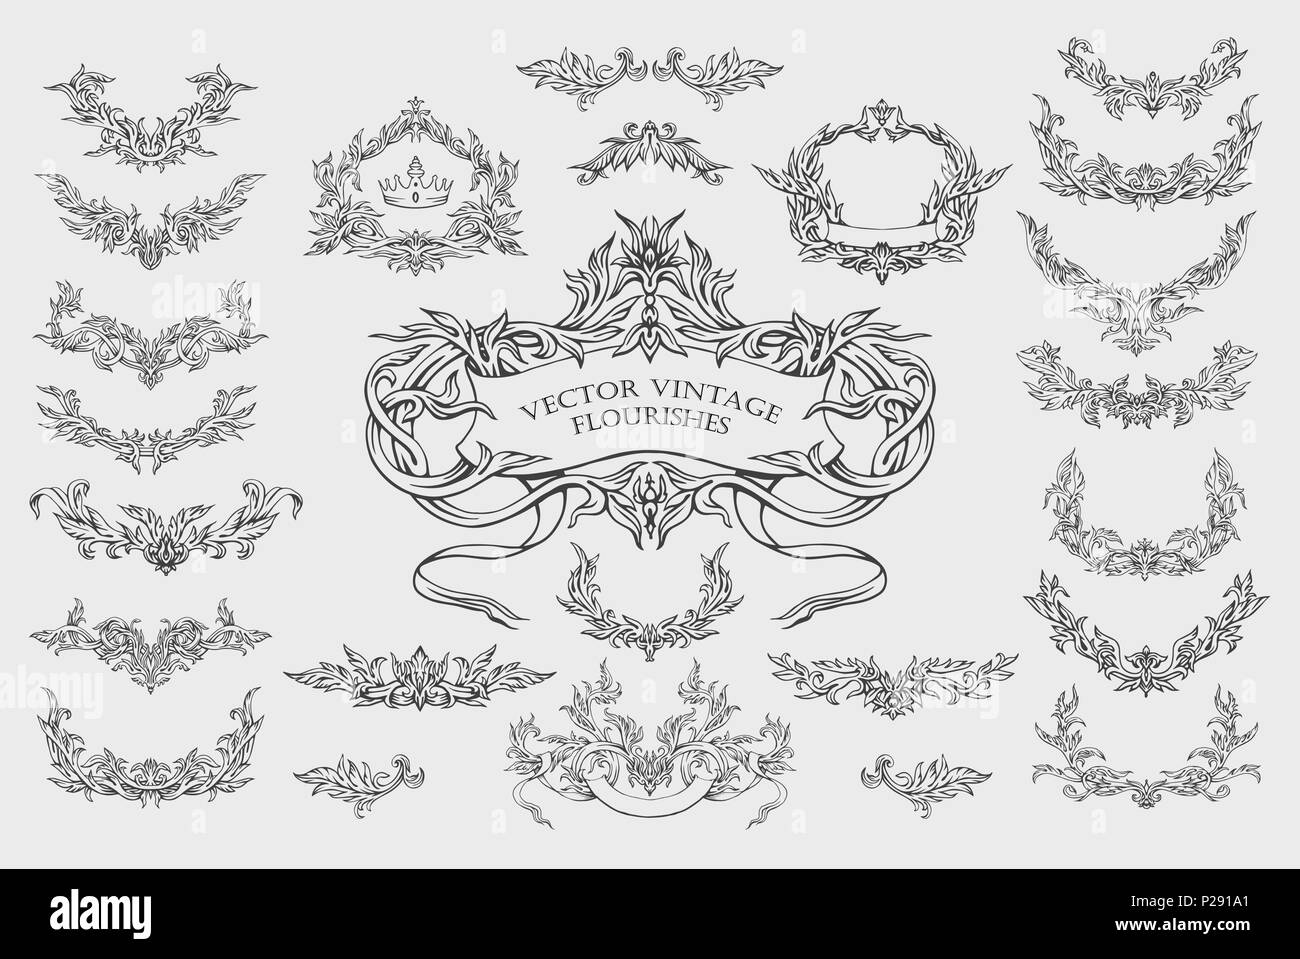 Calligraphy Fonts Victorian Vector Set Of Design Elements Frames And Page Decoration In